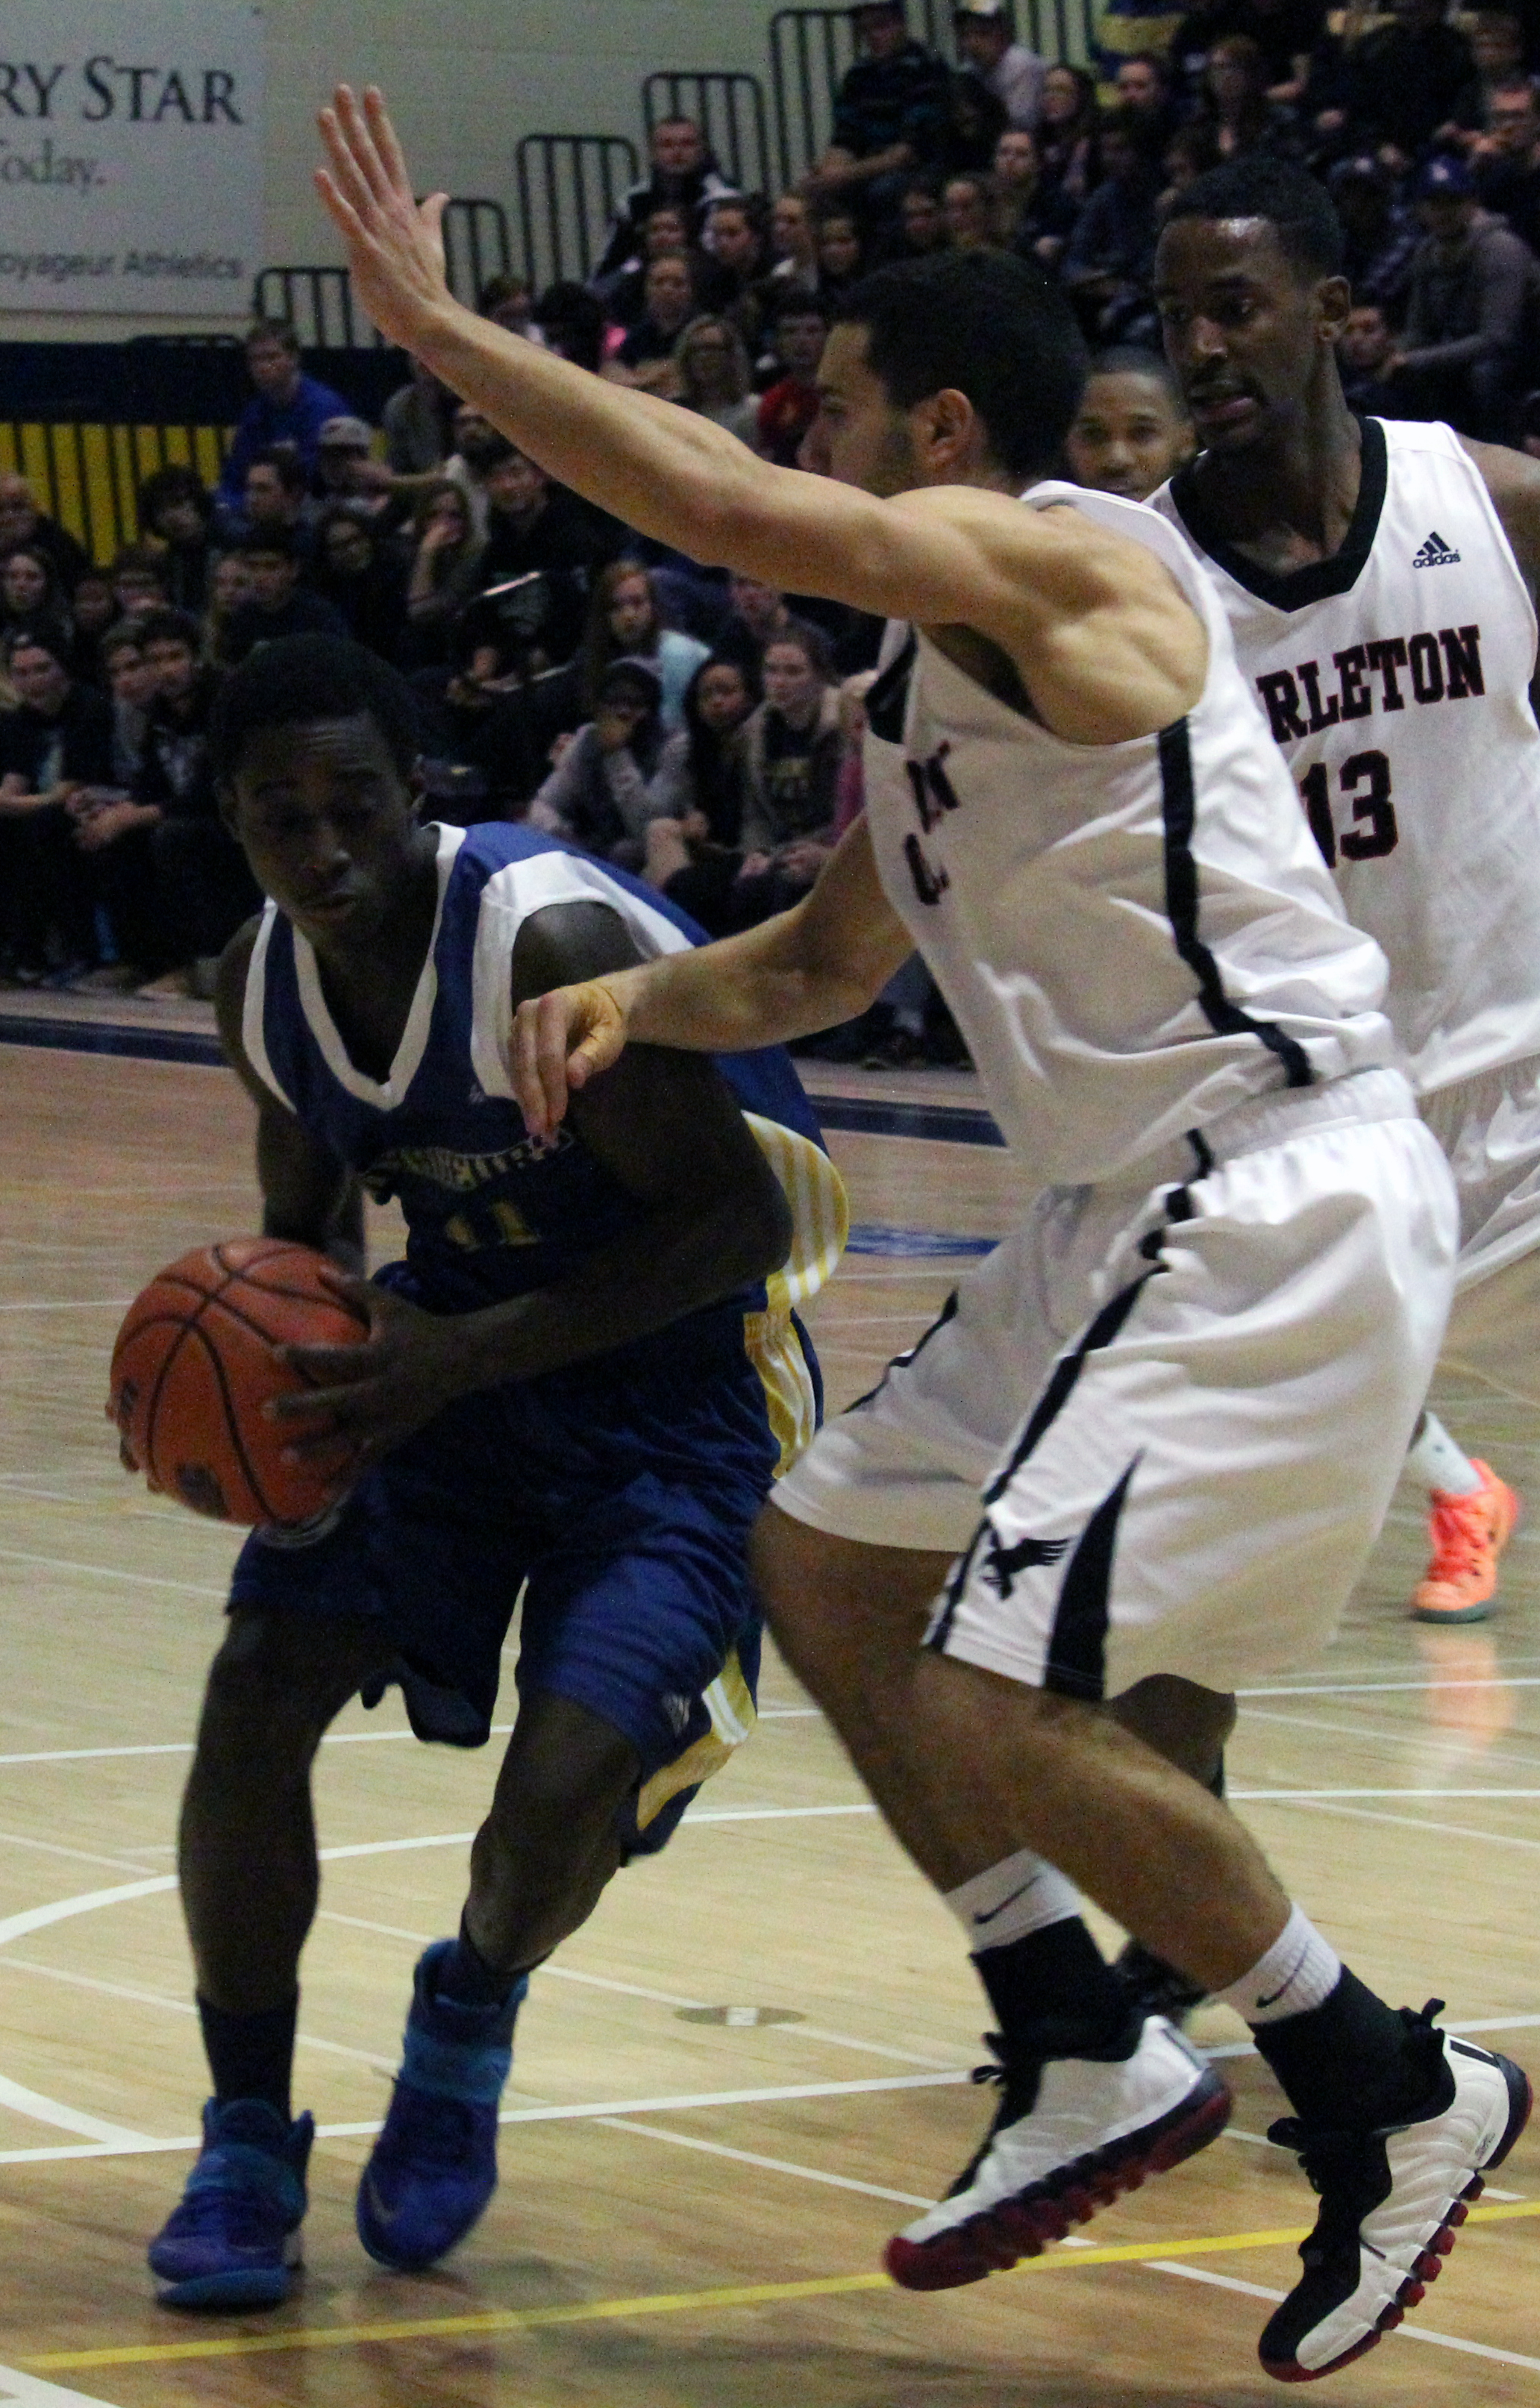 The Laurentian men's basketball team facing the Carleton Ravens on Nov. 15. Photo by Gabriel Rodrigues